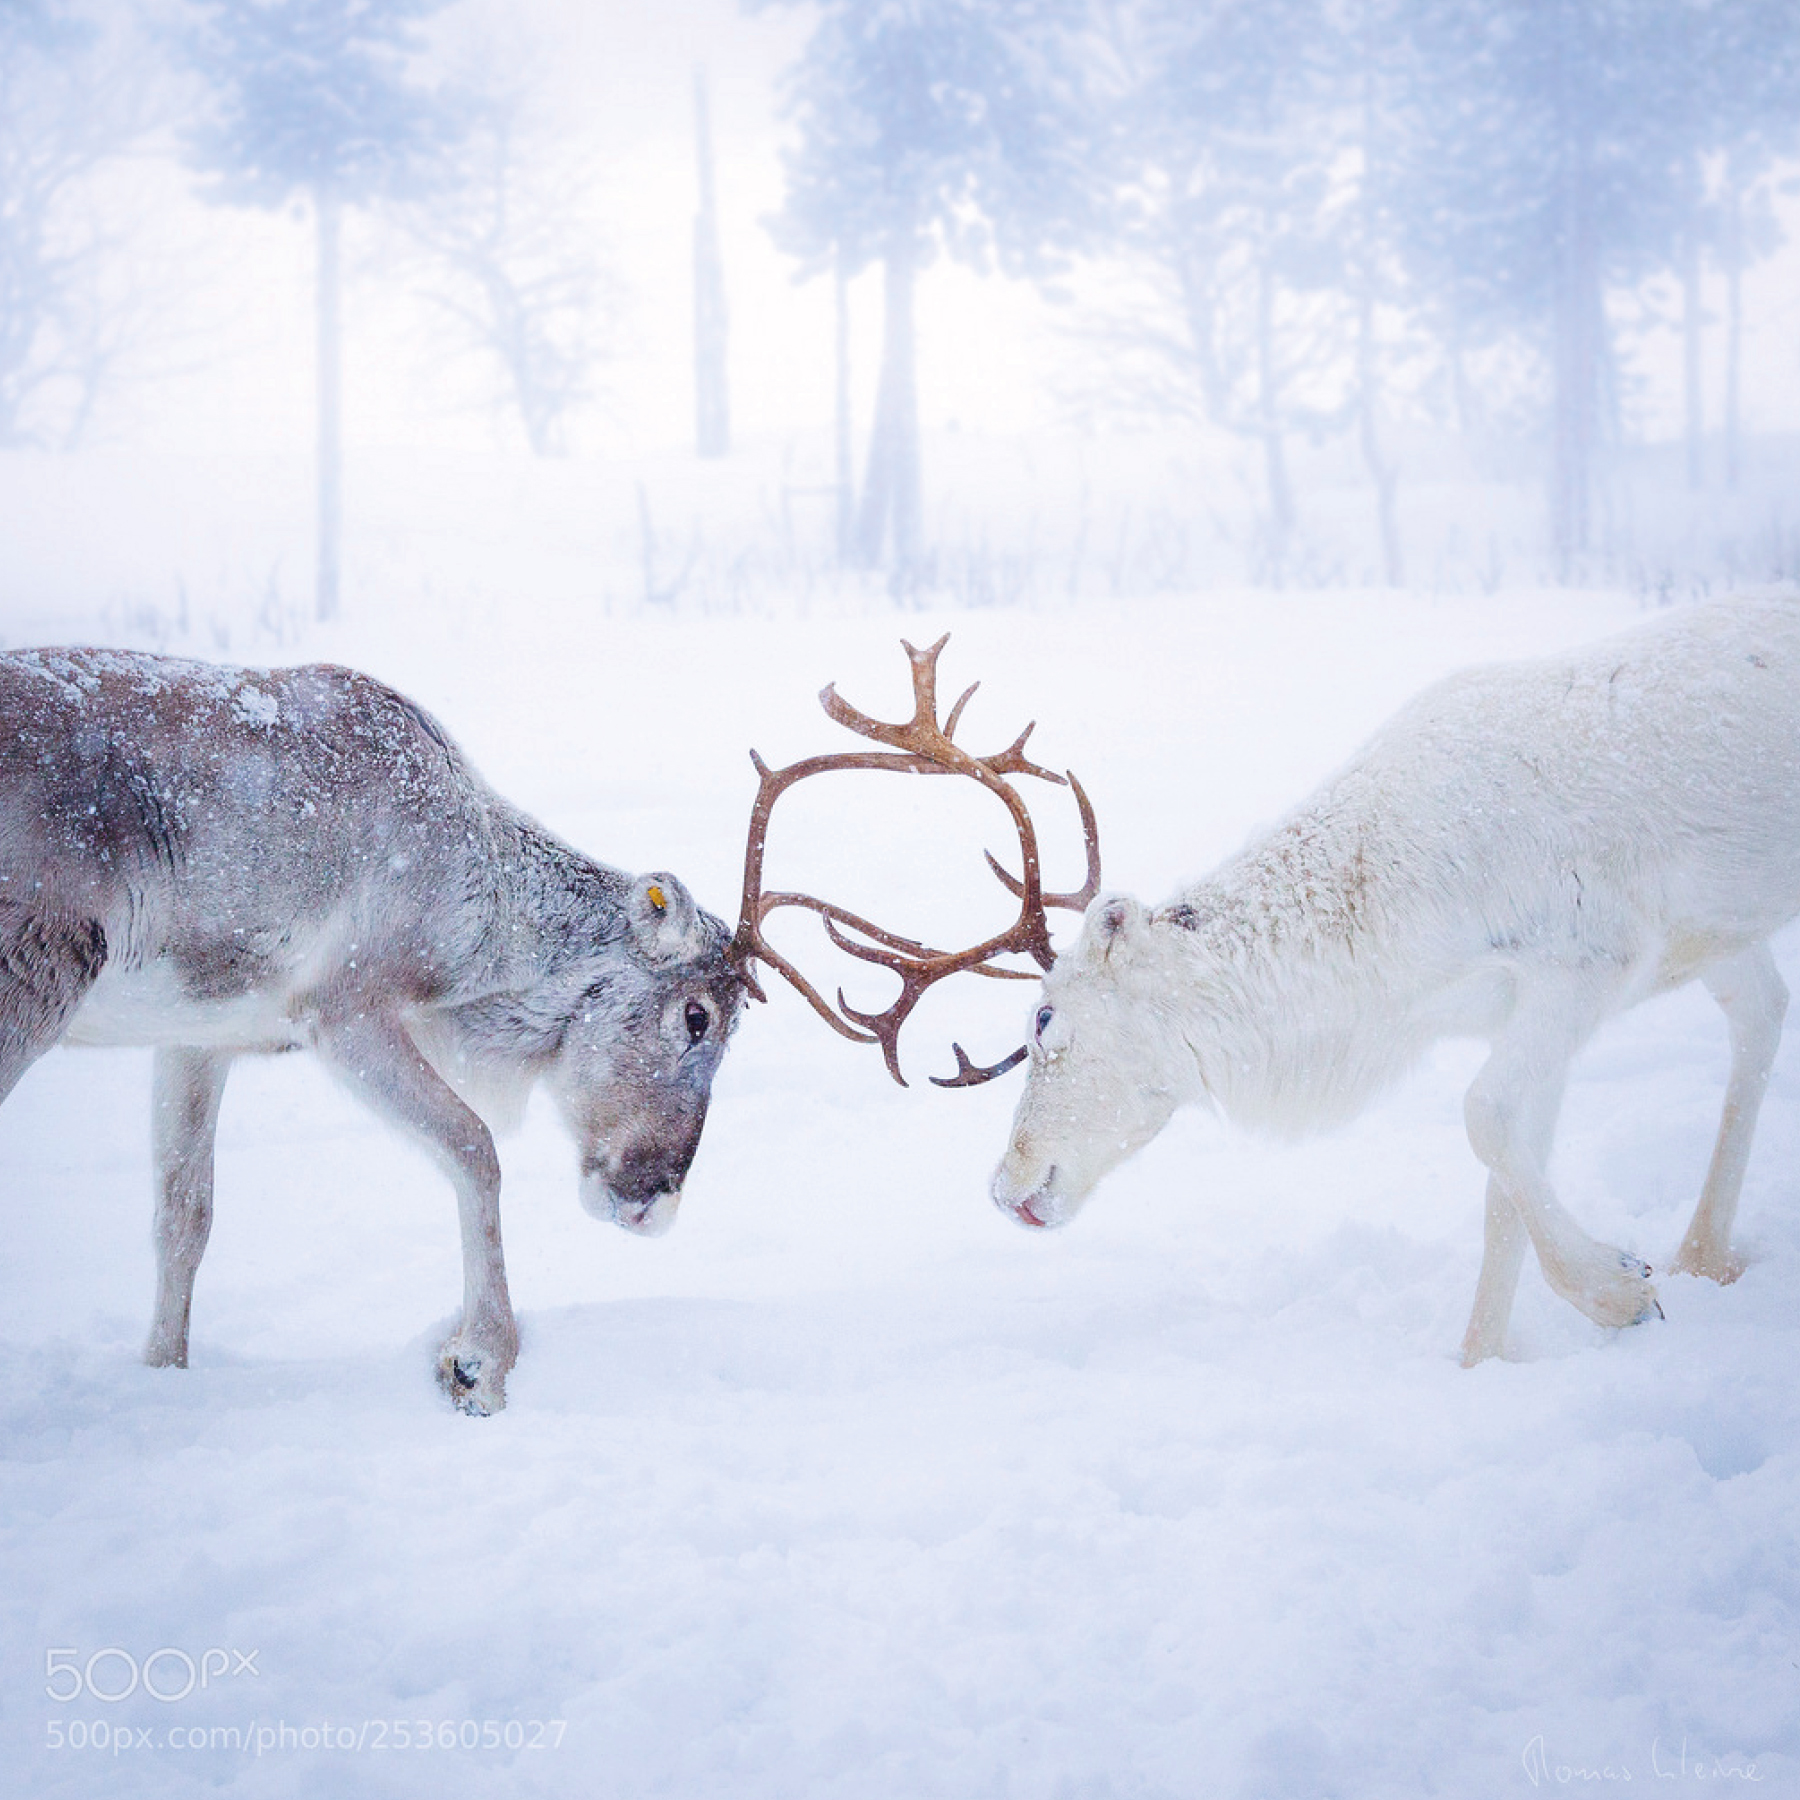 This image was taken a few miles east of Nellim in Finish Lapland in rather harsh weather. We met these two reindeers in mystic light during an excursion with snowmobiles near the Russian border. Thomas is living in Germany near Hamburg and in Sweden near Borås. He has just finished a book project on the beauty of northern Norway.